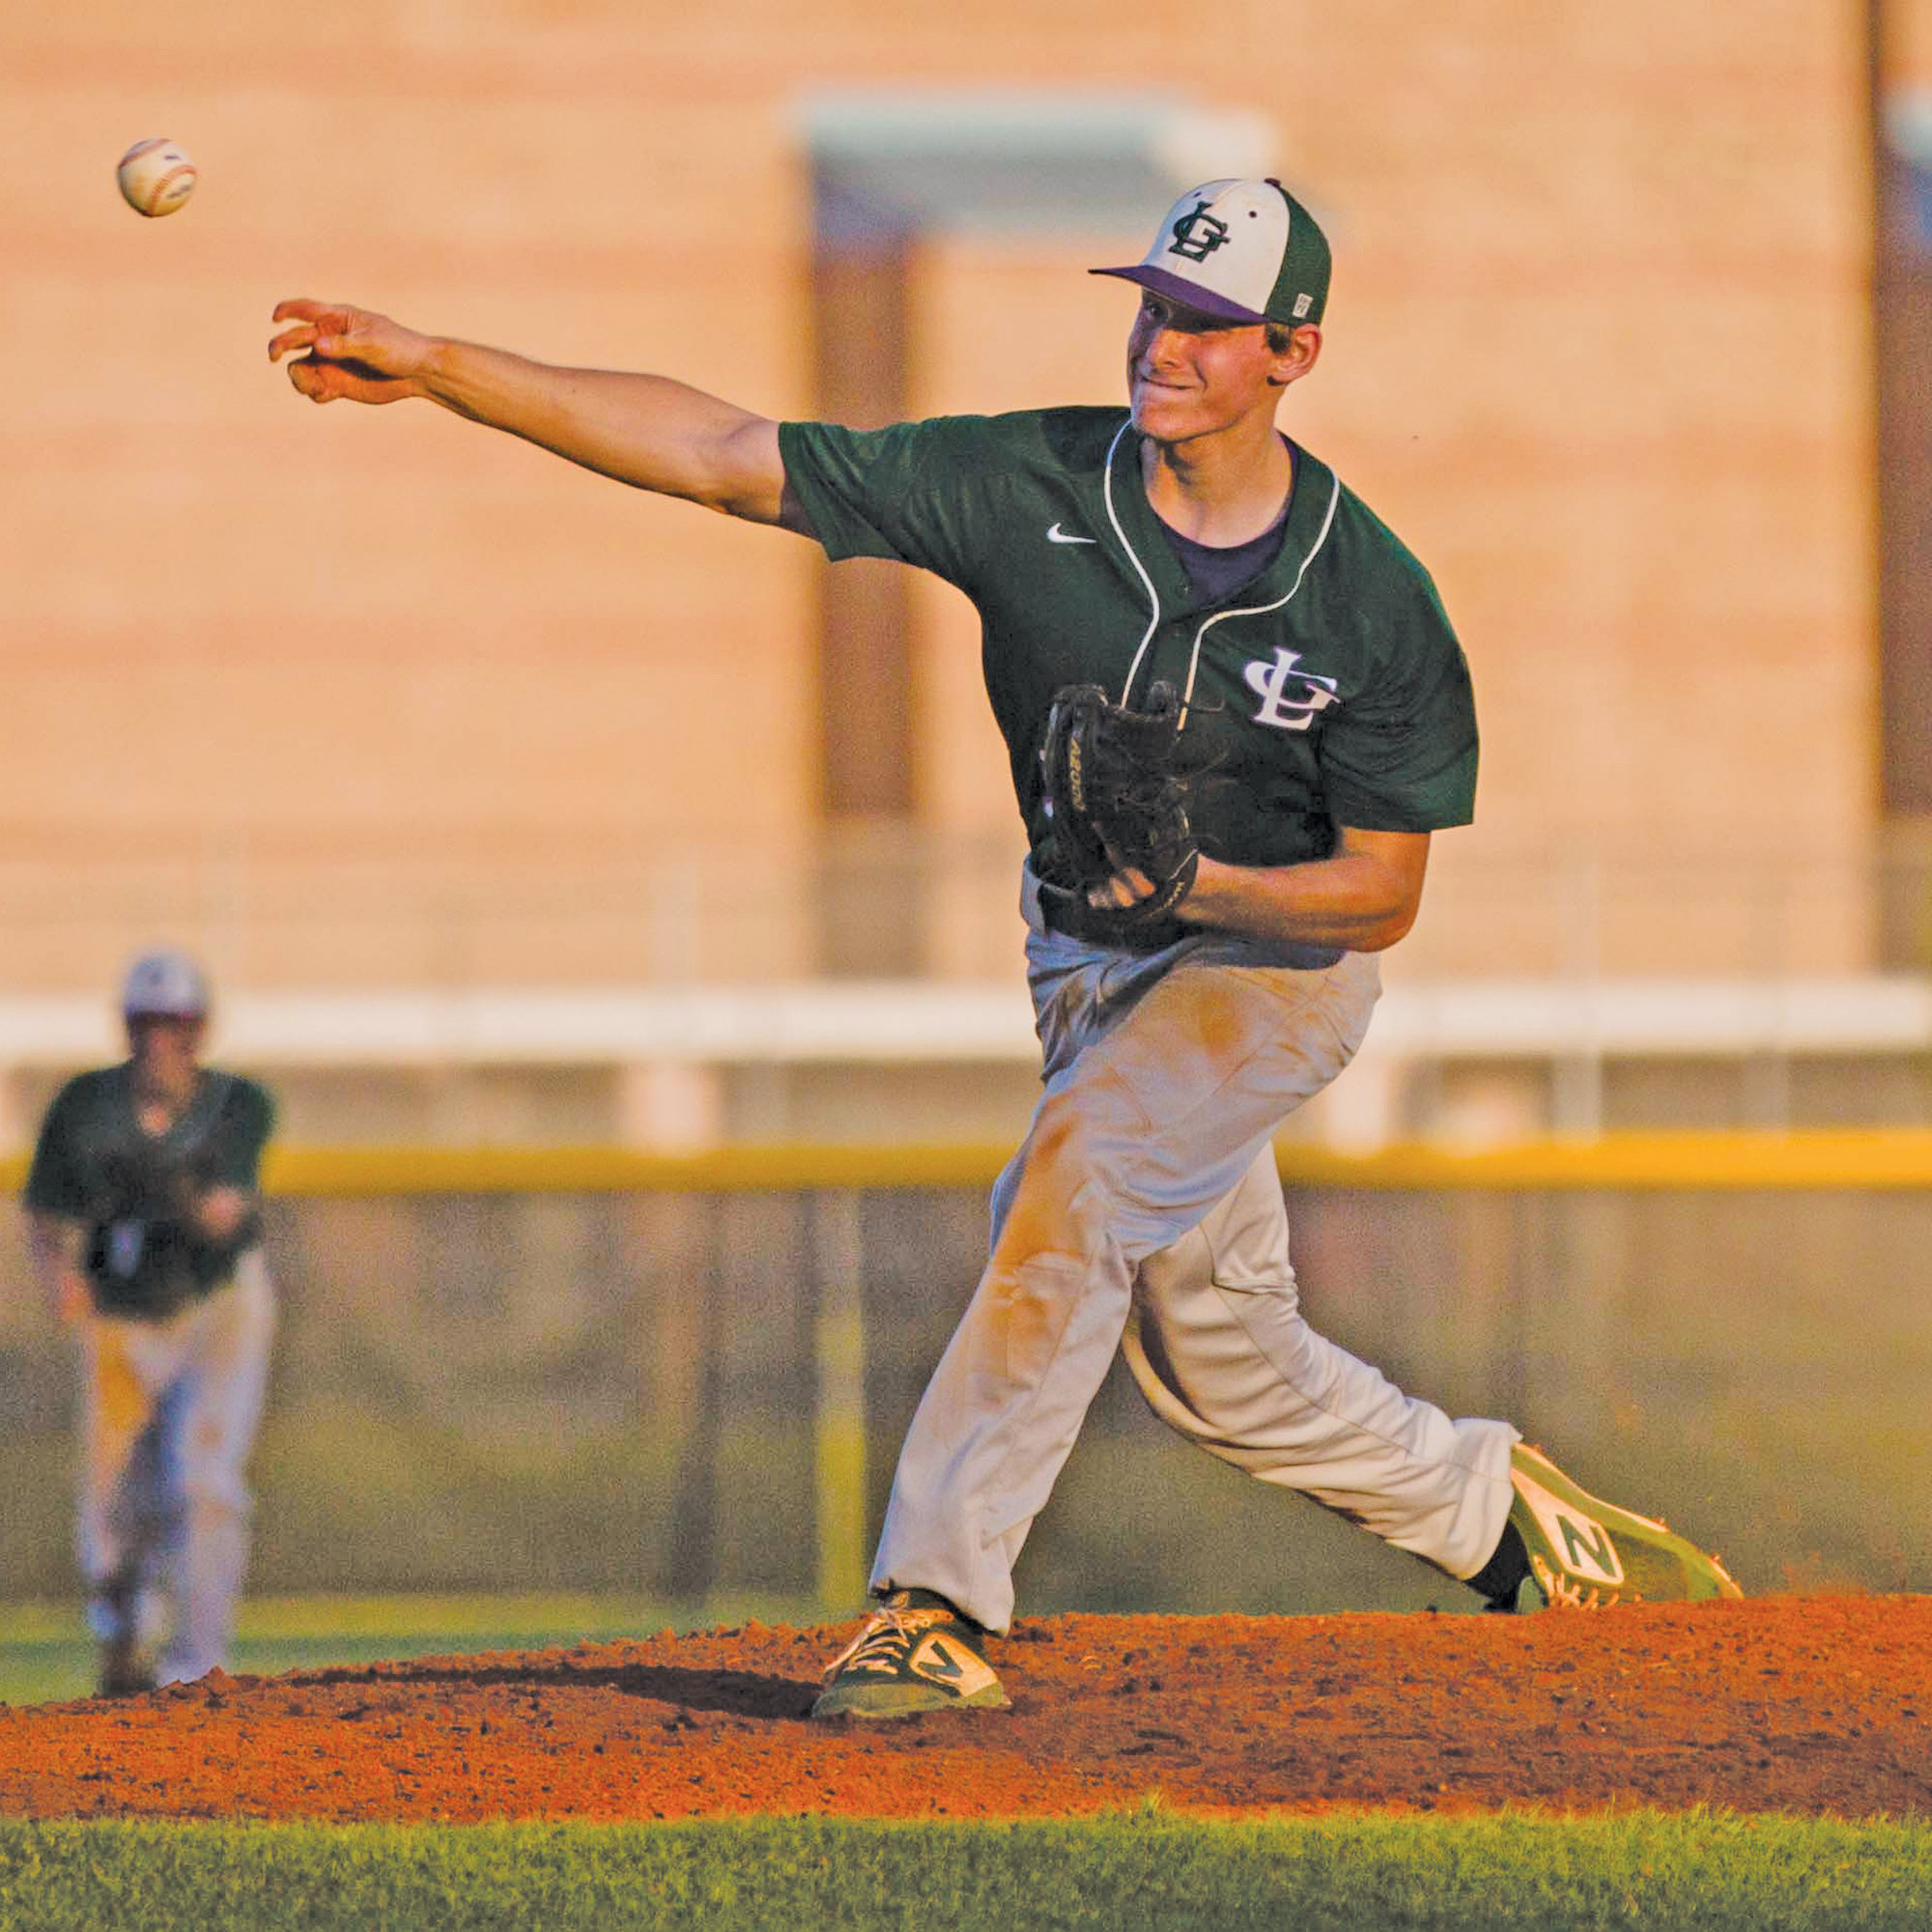 Lakewood's Cody Windham delivers a pitch during the Gators' 12-1 victory over Crestwood on Wednesday at the Crestwood field.